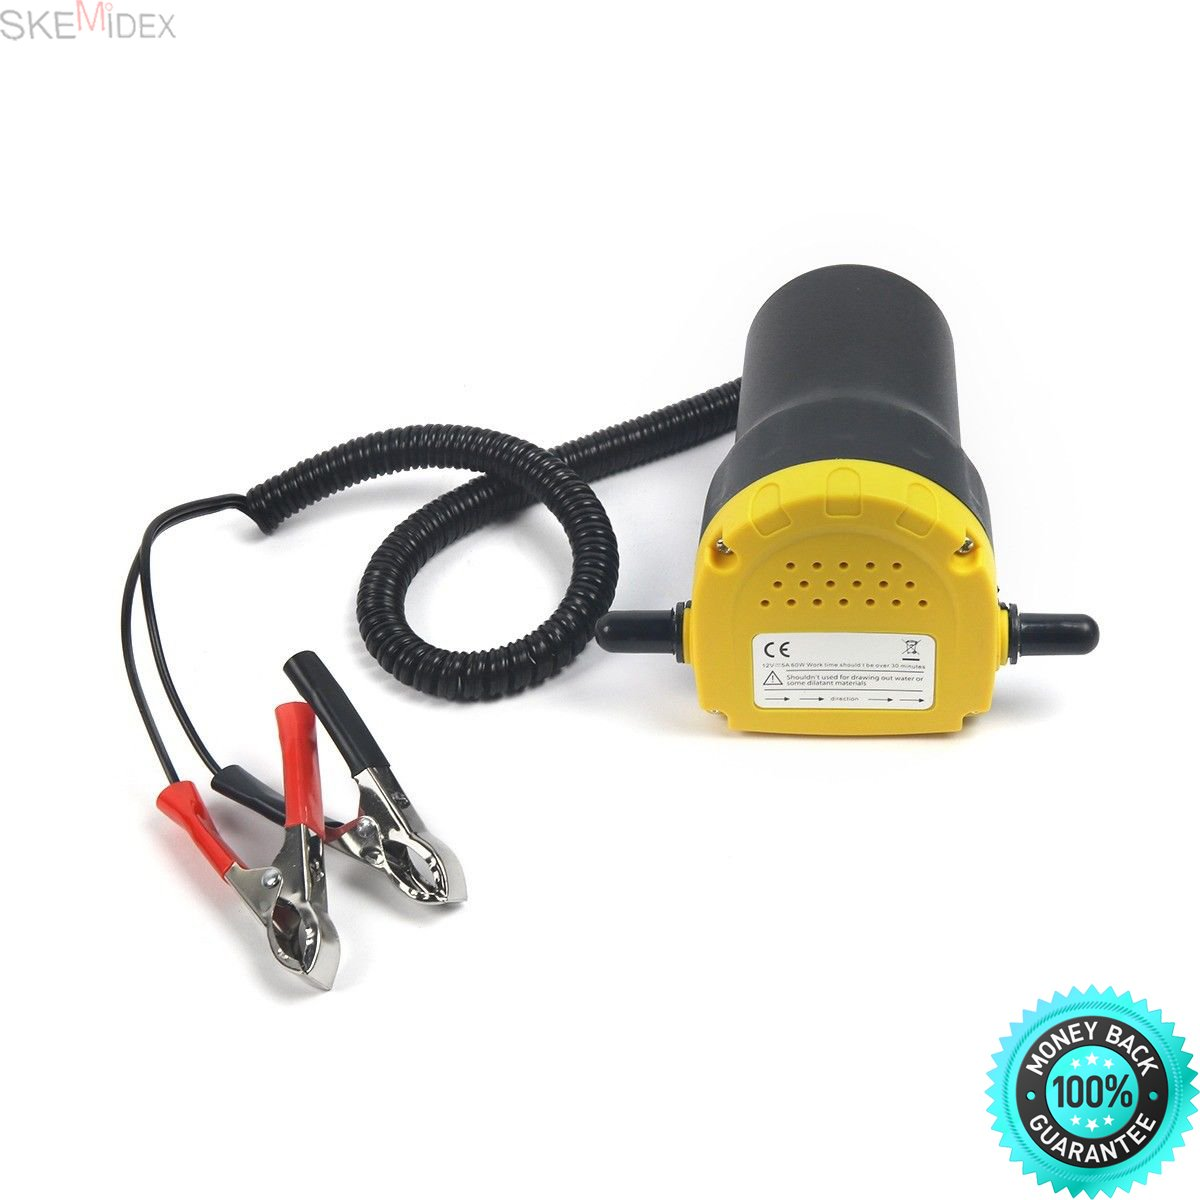 SKEMiDEX-12v Fluid Oil Diesel Extractor Transfer Siphon car truck Generato Tractors Pump And automotive tools list automotive tools and equipment wholesalers automotive tools names and pictures by SKEMiDEX (Image #1)